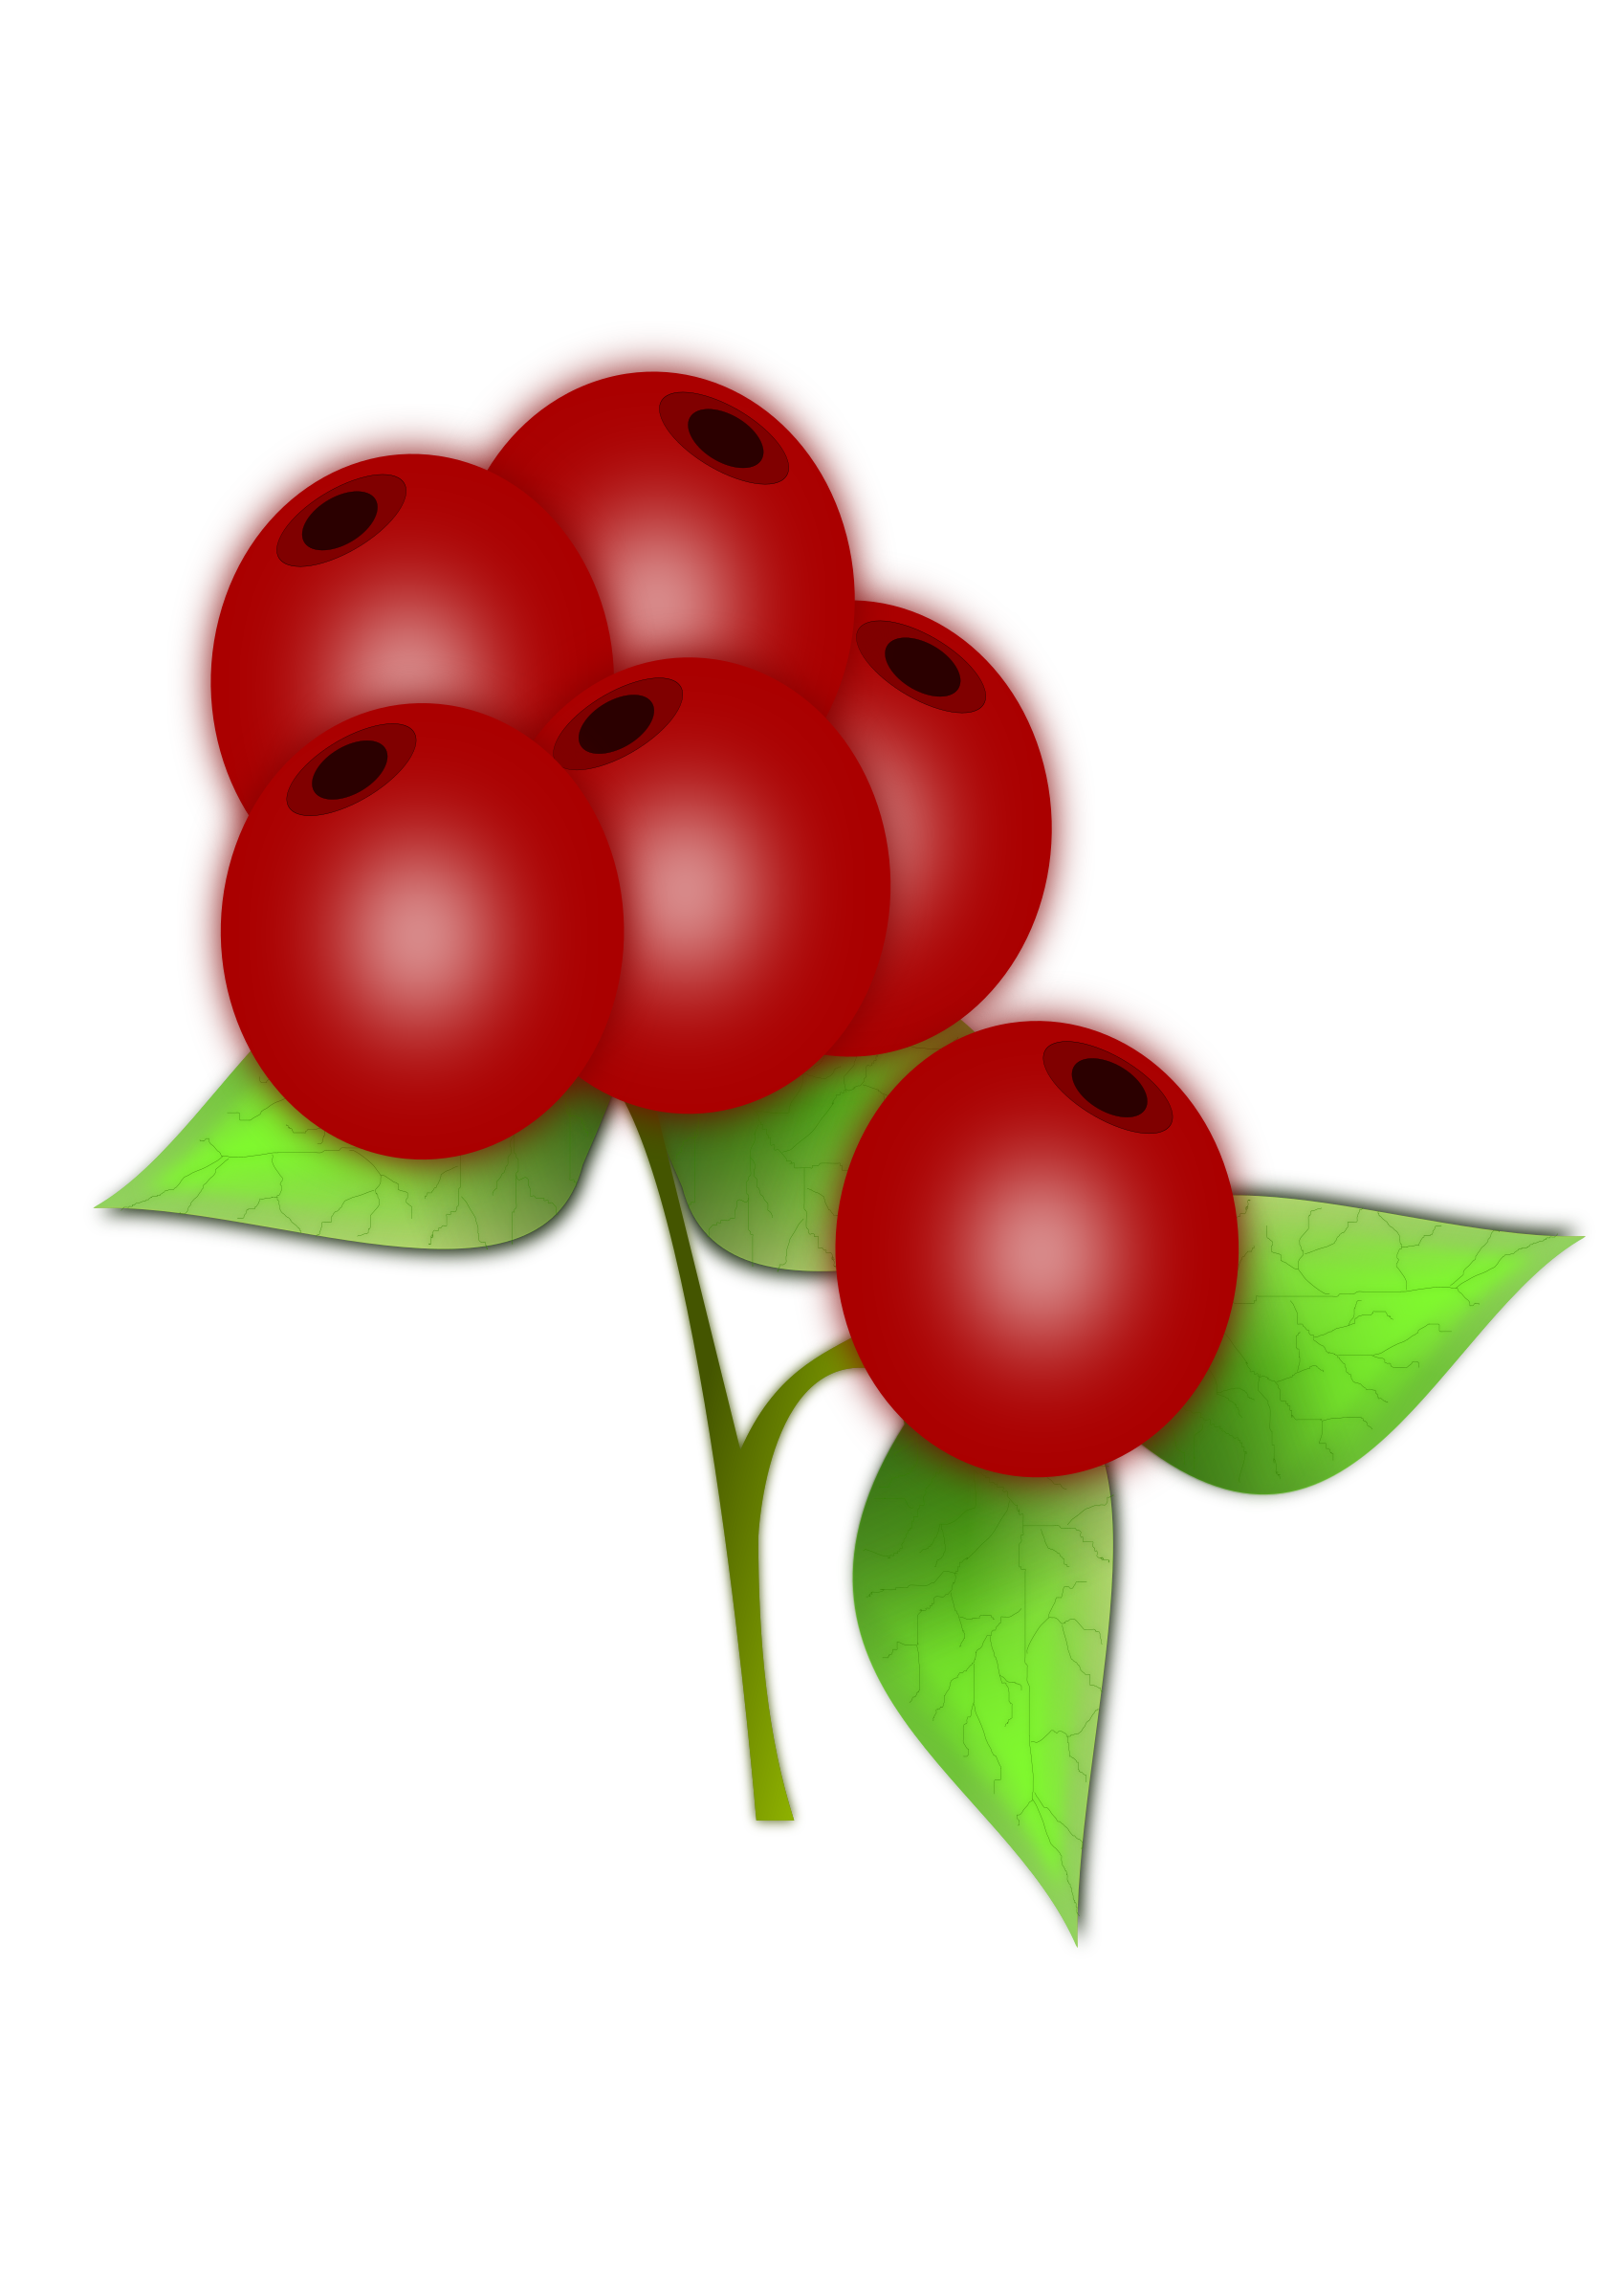 Red berry by gblas.ivan